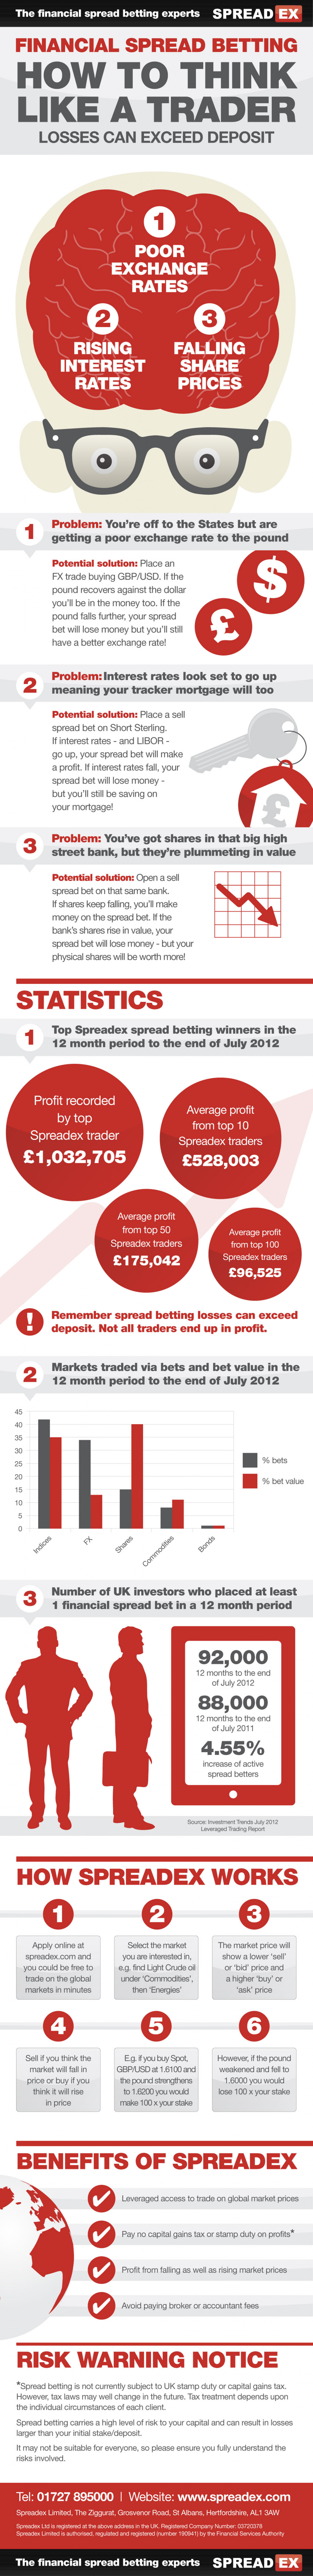 Spreadex: Financial Spread Betting and the advantages Infographic